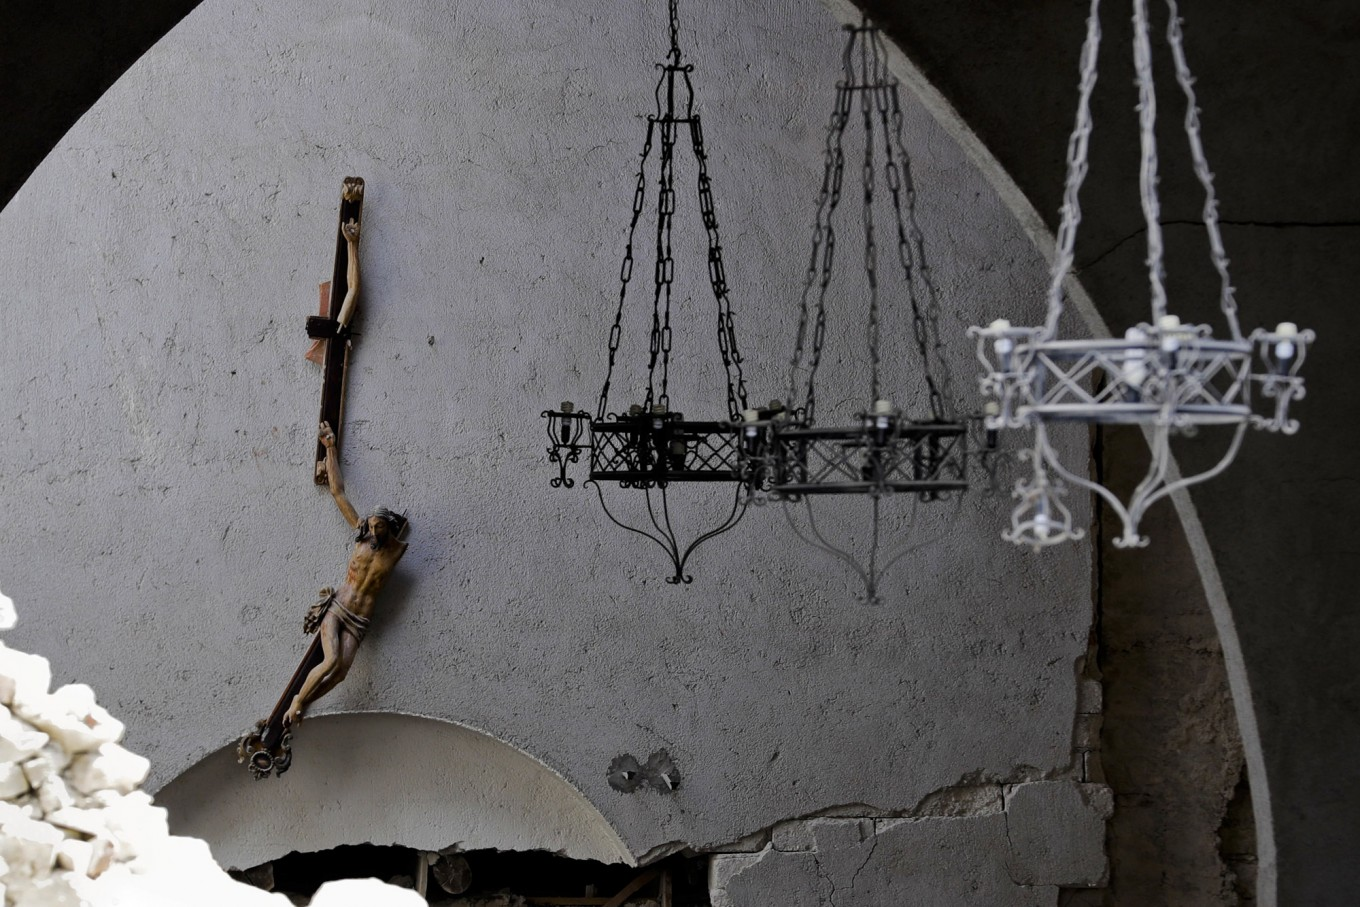 A broken crucifix hangs inside the damaged church of Santa Maria della Misericordia in Accumoli, central Italy, Wednesday, Aug. 24, 2016, after a magnitude 6 quake struck at 3:36 a.m. [0136 GMT] and was felt across a broad swath of central Italy, including Rome where residents of the capital felt a long swaying followed by aftershocks. AP Photo/Andrew Medichini